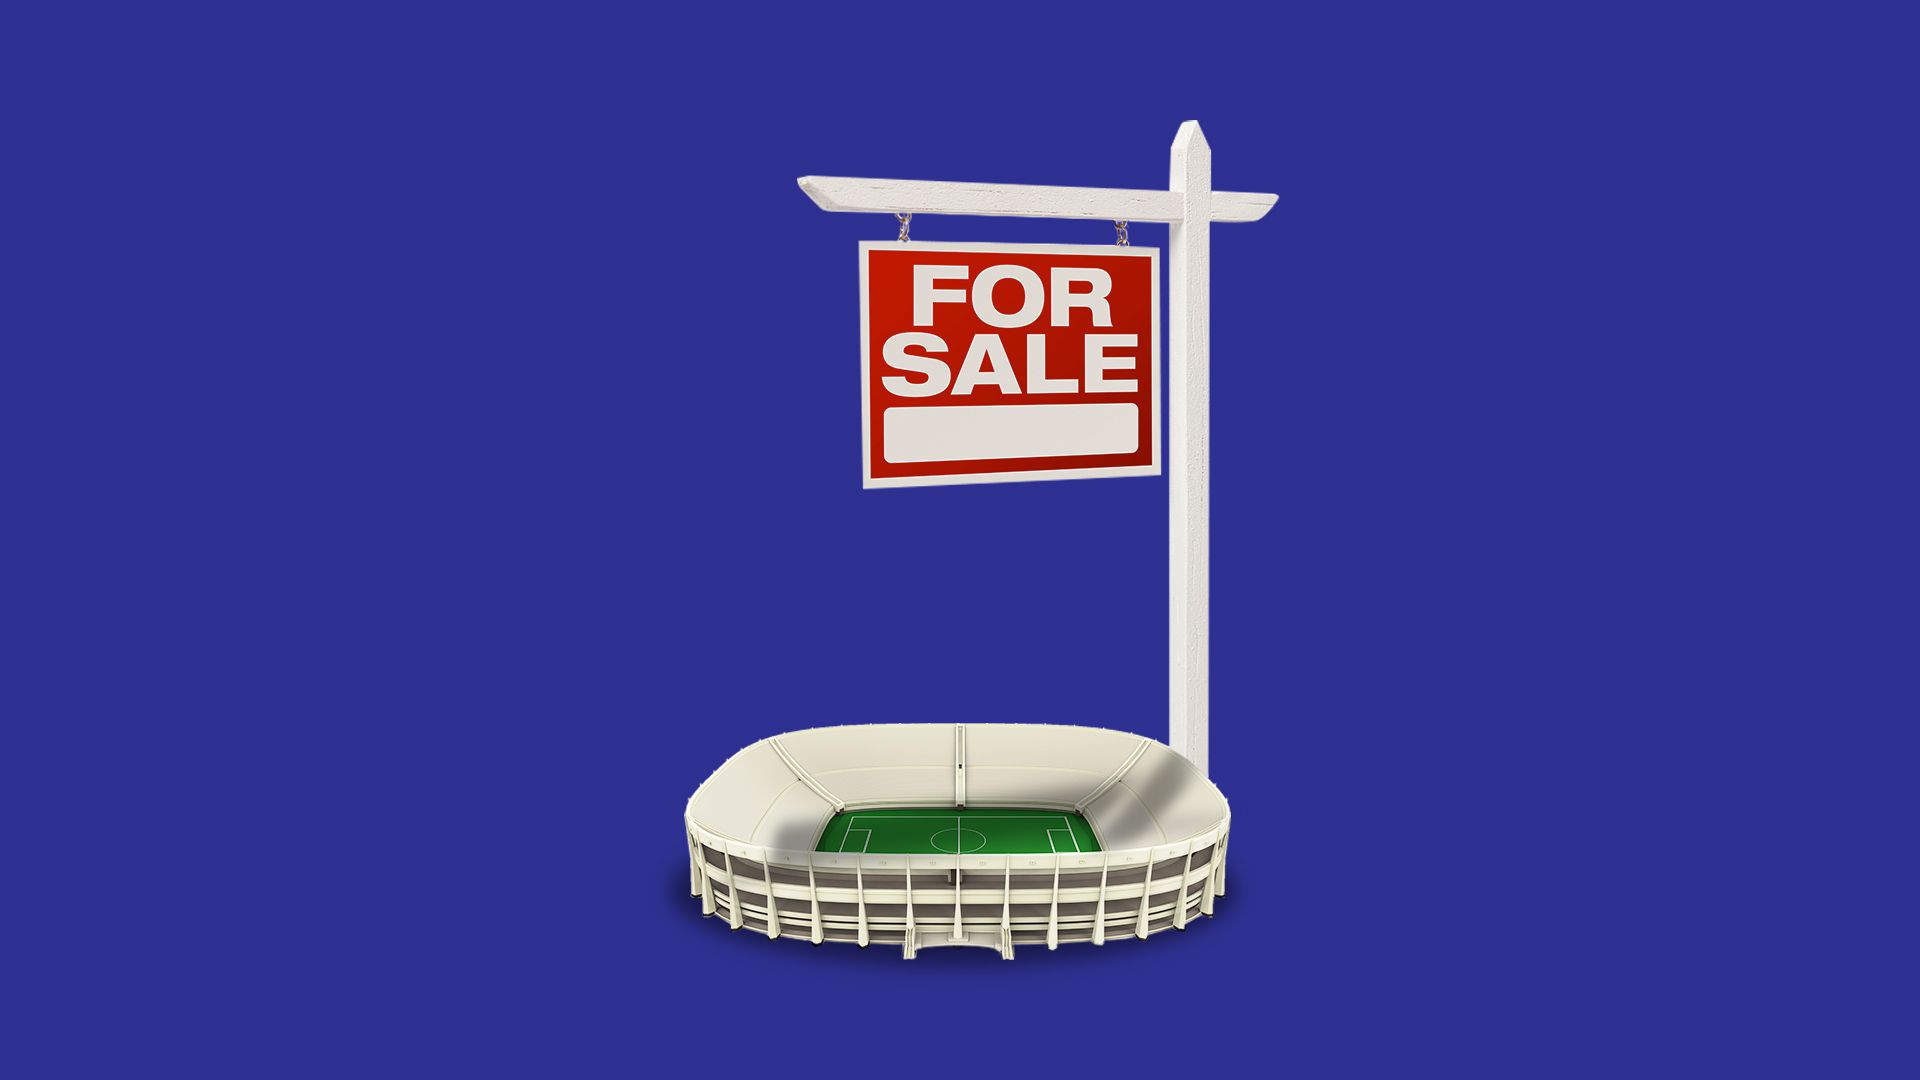 llustration of a tiny stadium being overshadowed by a large For Sale sign